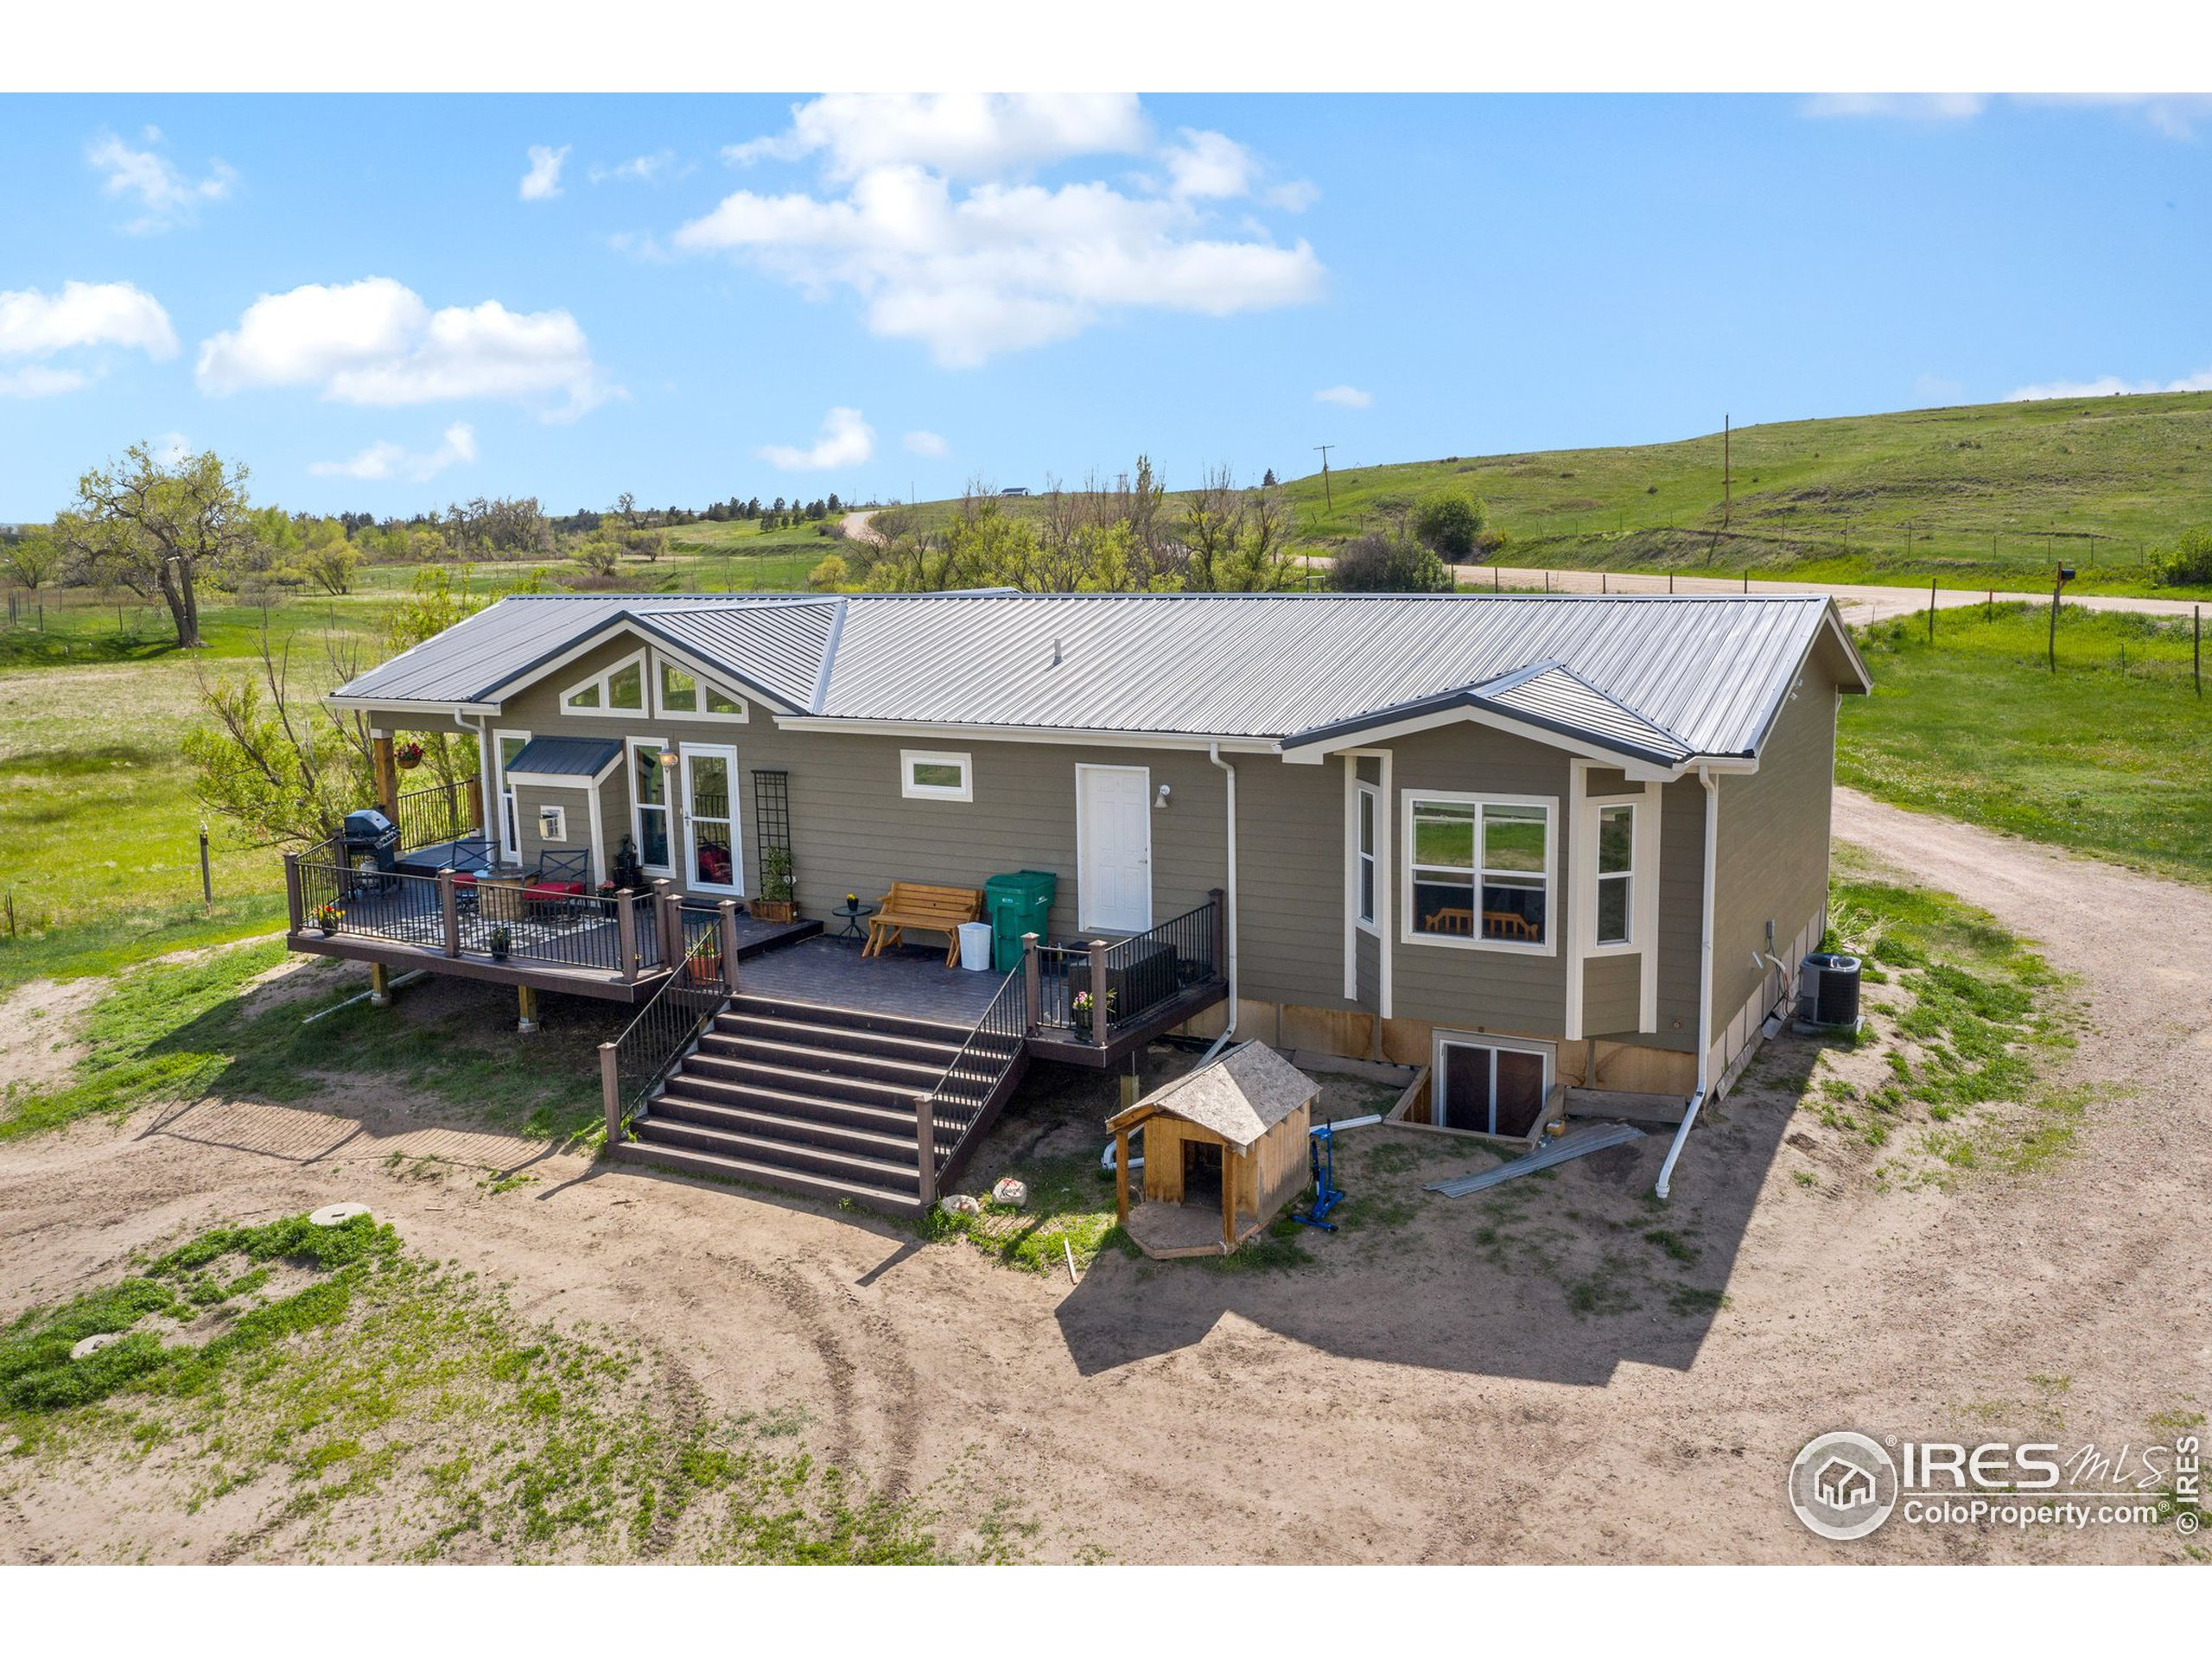 29950 Maul Rd - 2nd home located on the property